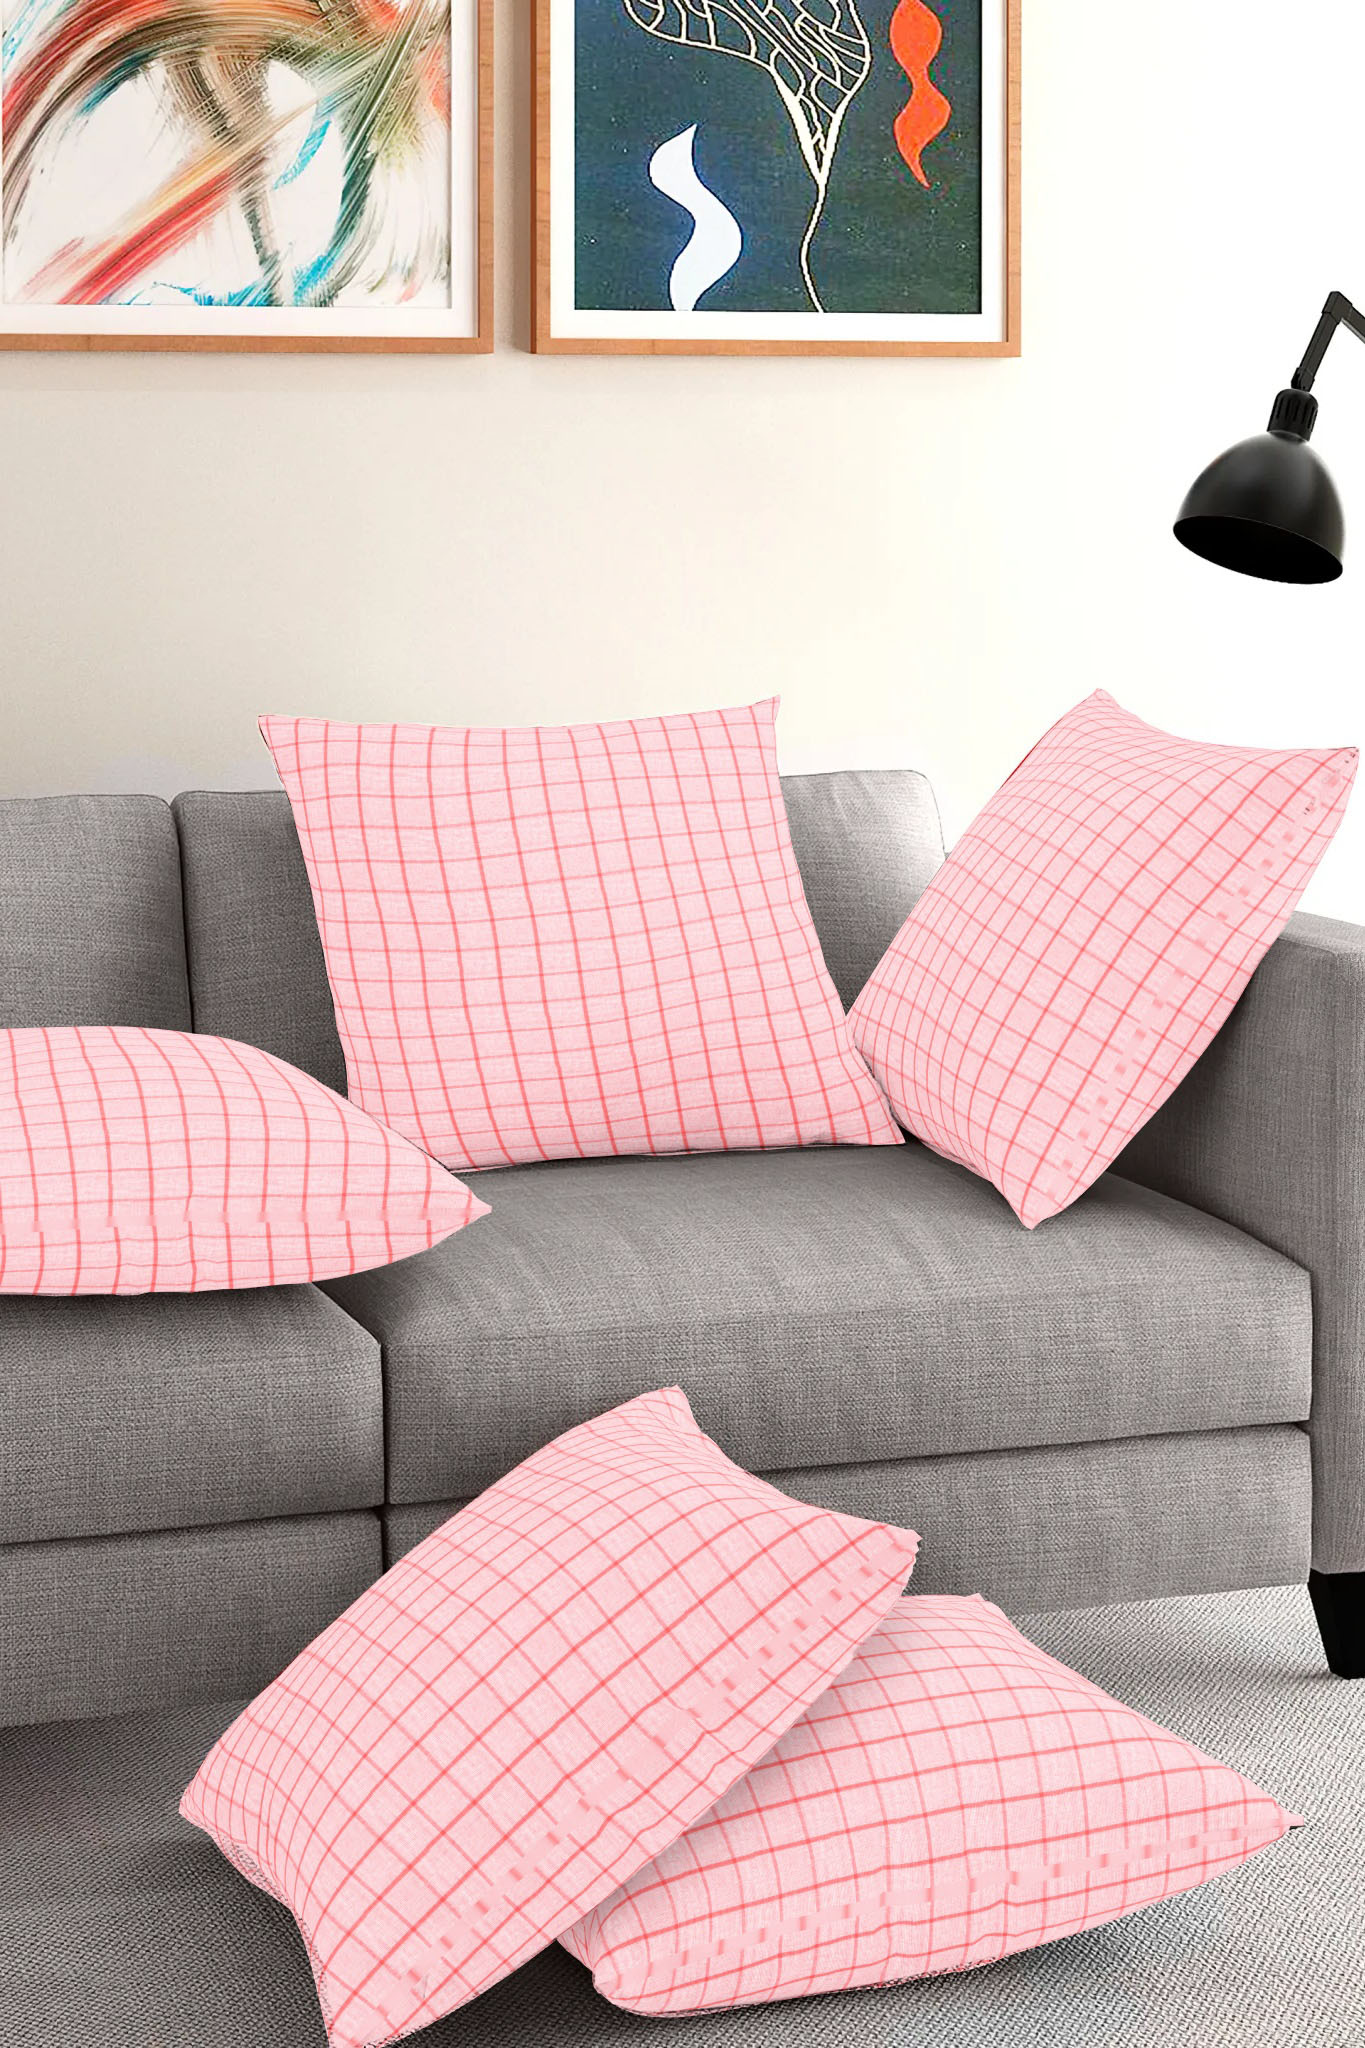 Set of 5-White Pink Cotton Cushion Cover-35382-16x16 Inches